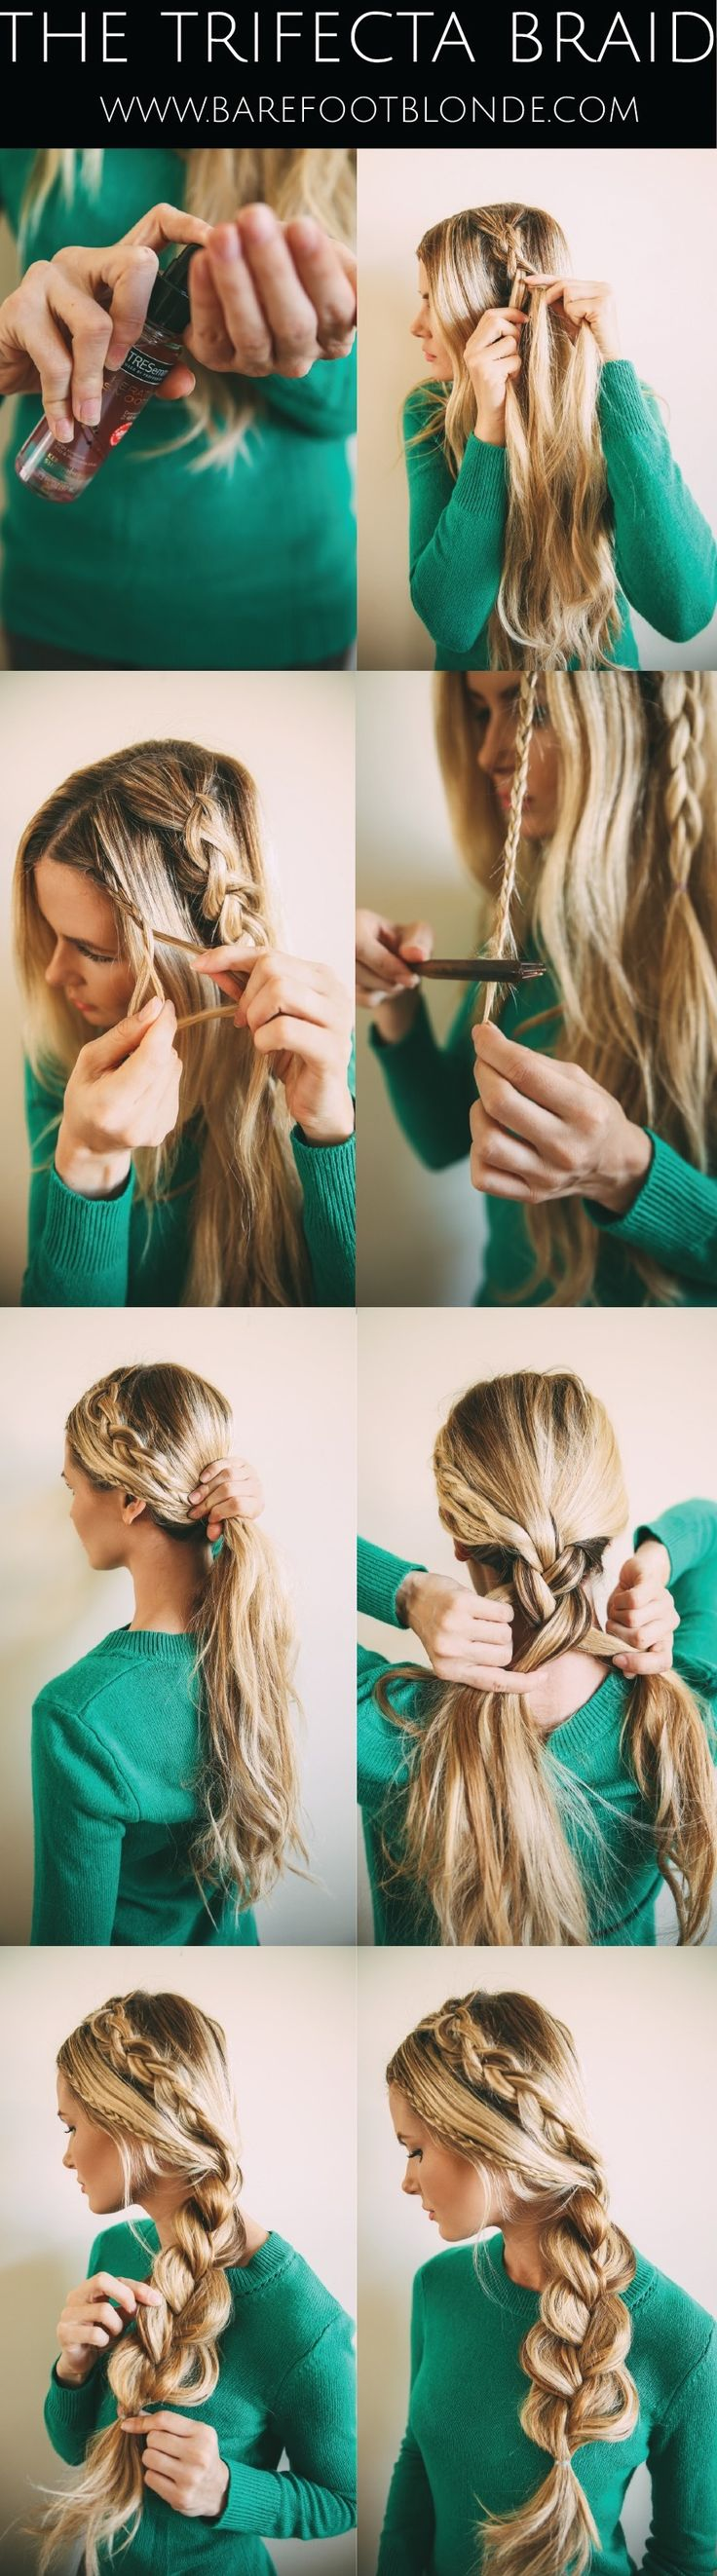 The Trifecta Braid How To